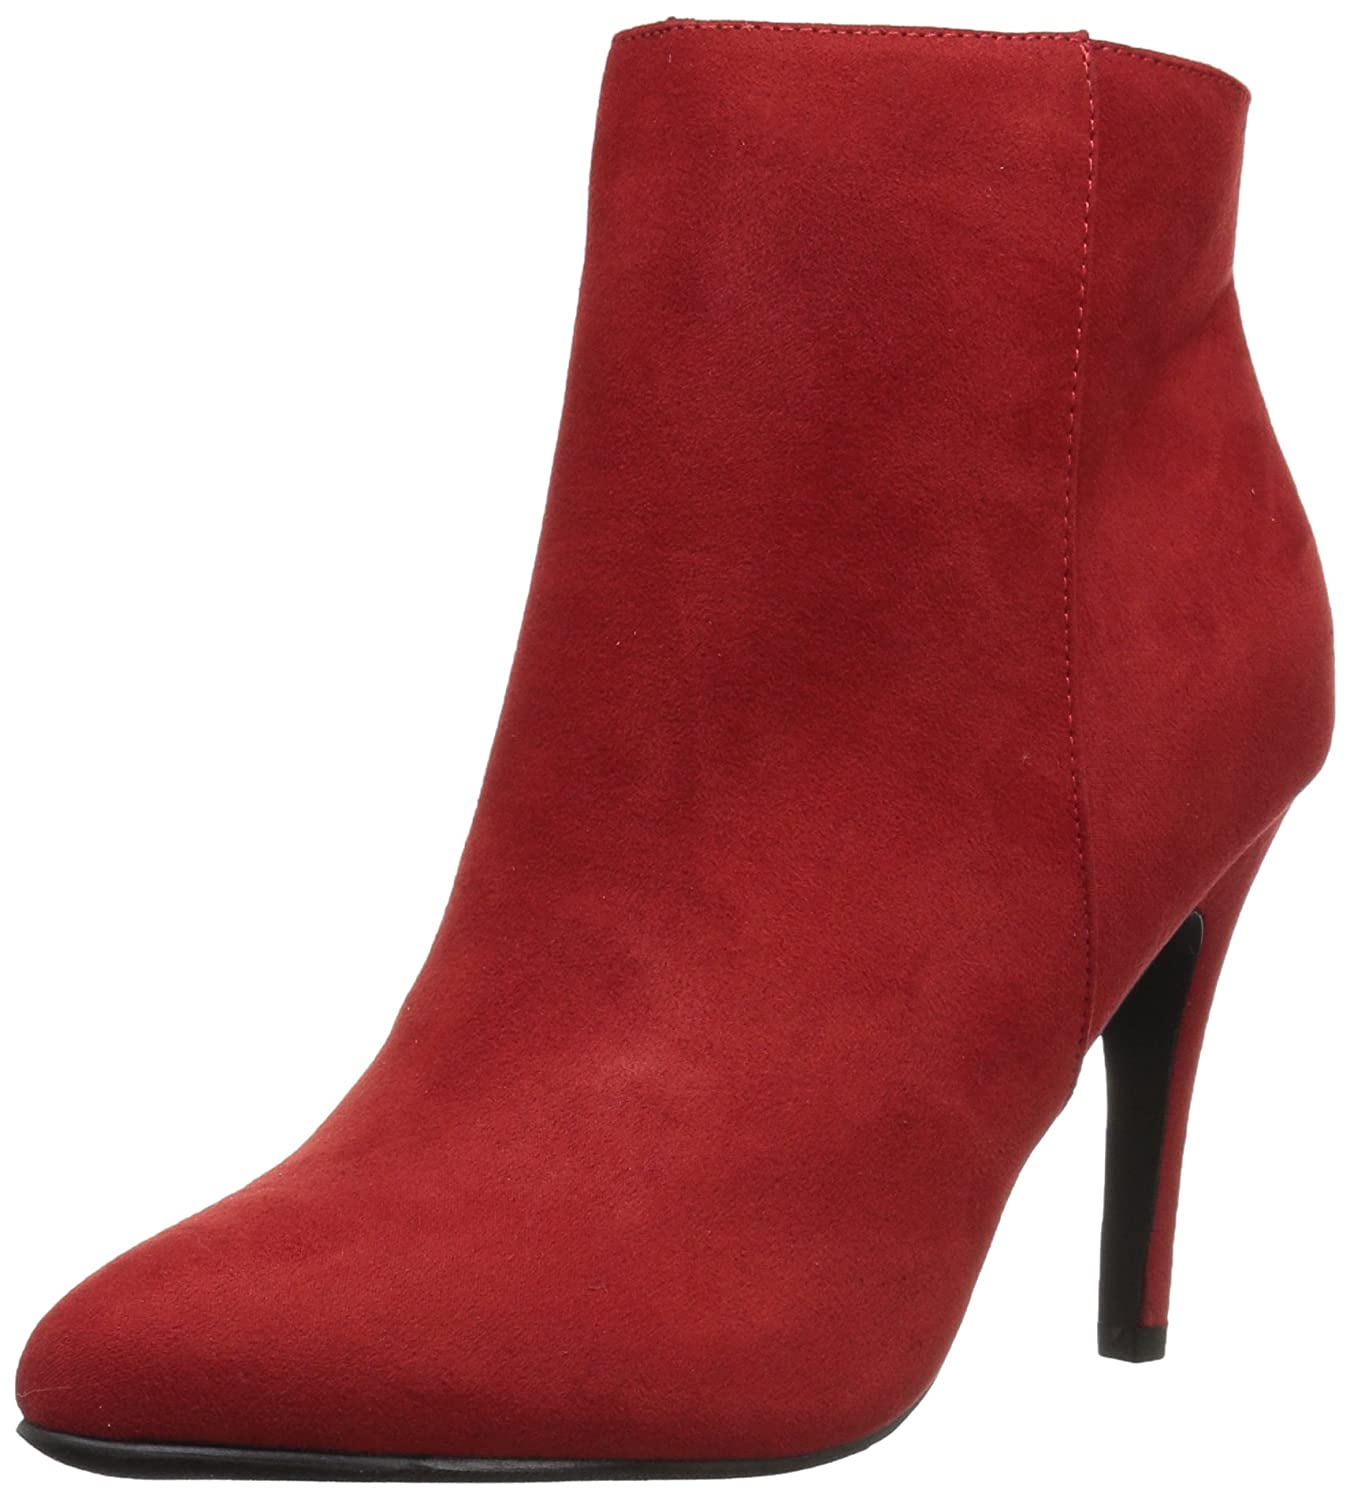 Madden Girl Women's Sally Ankle Bootie B077546SDP 6.5 B(M) US|Red Fabric